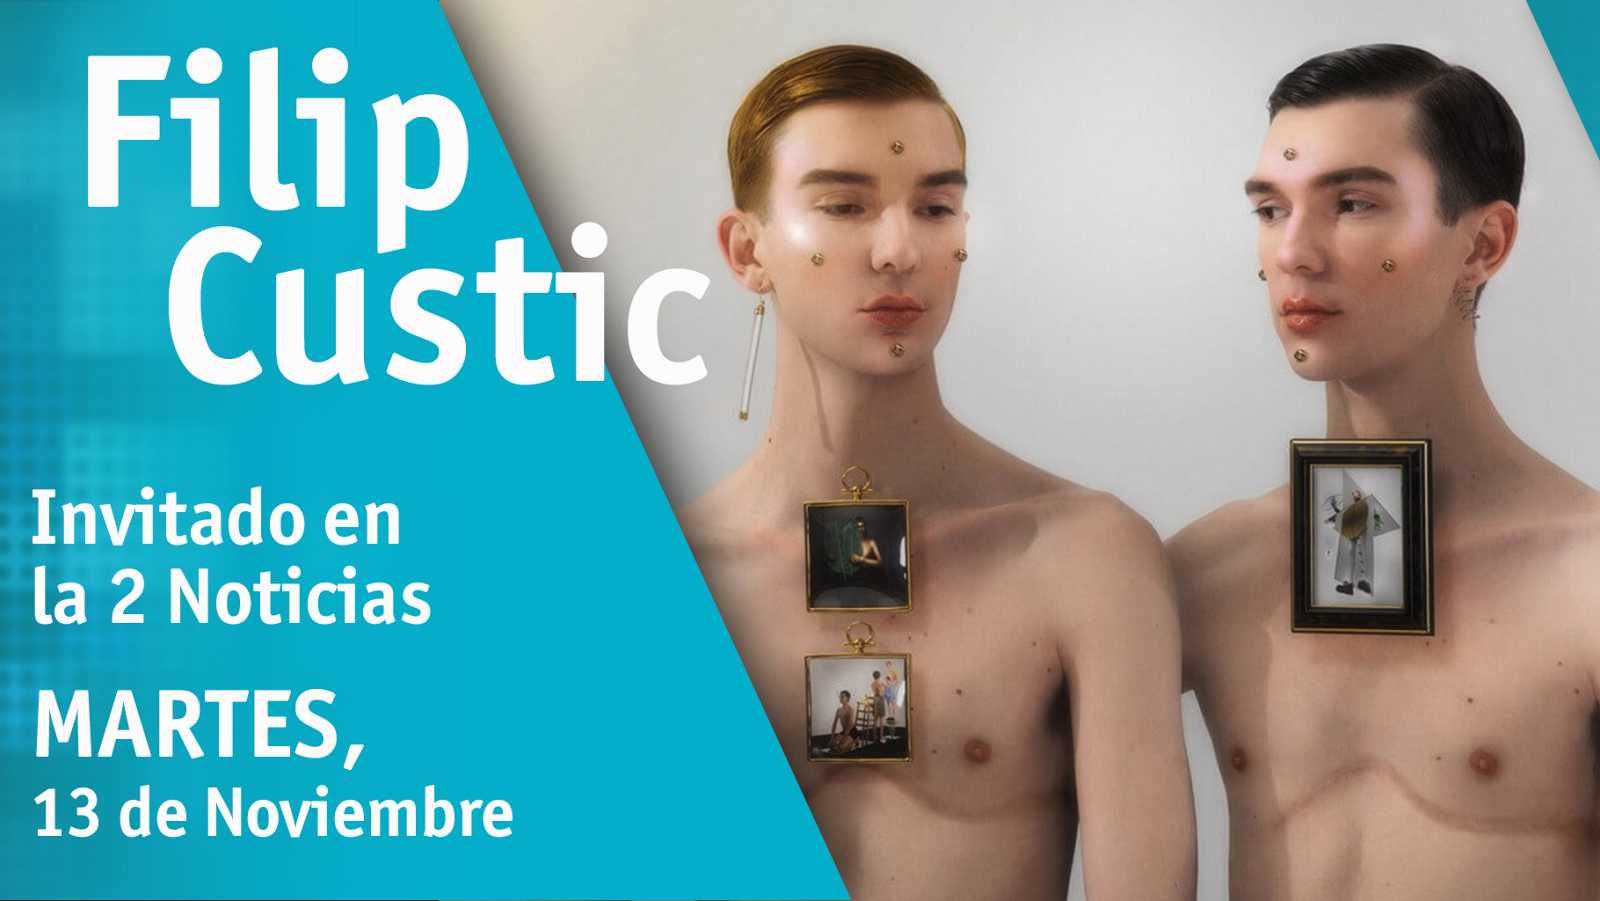 El universo surrealista de Filip Custic